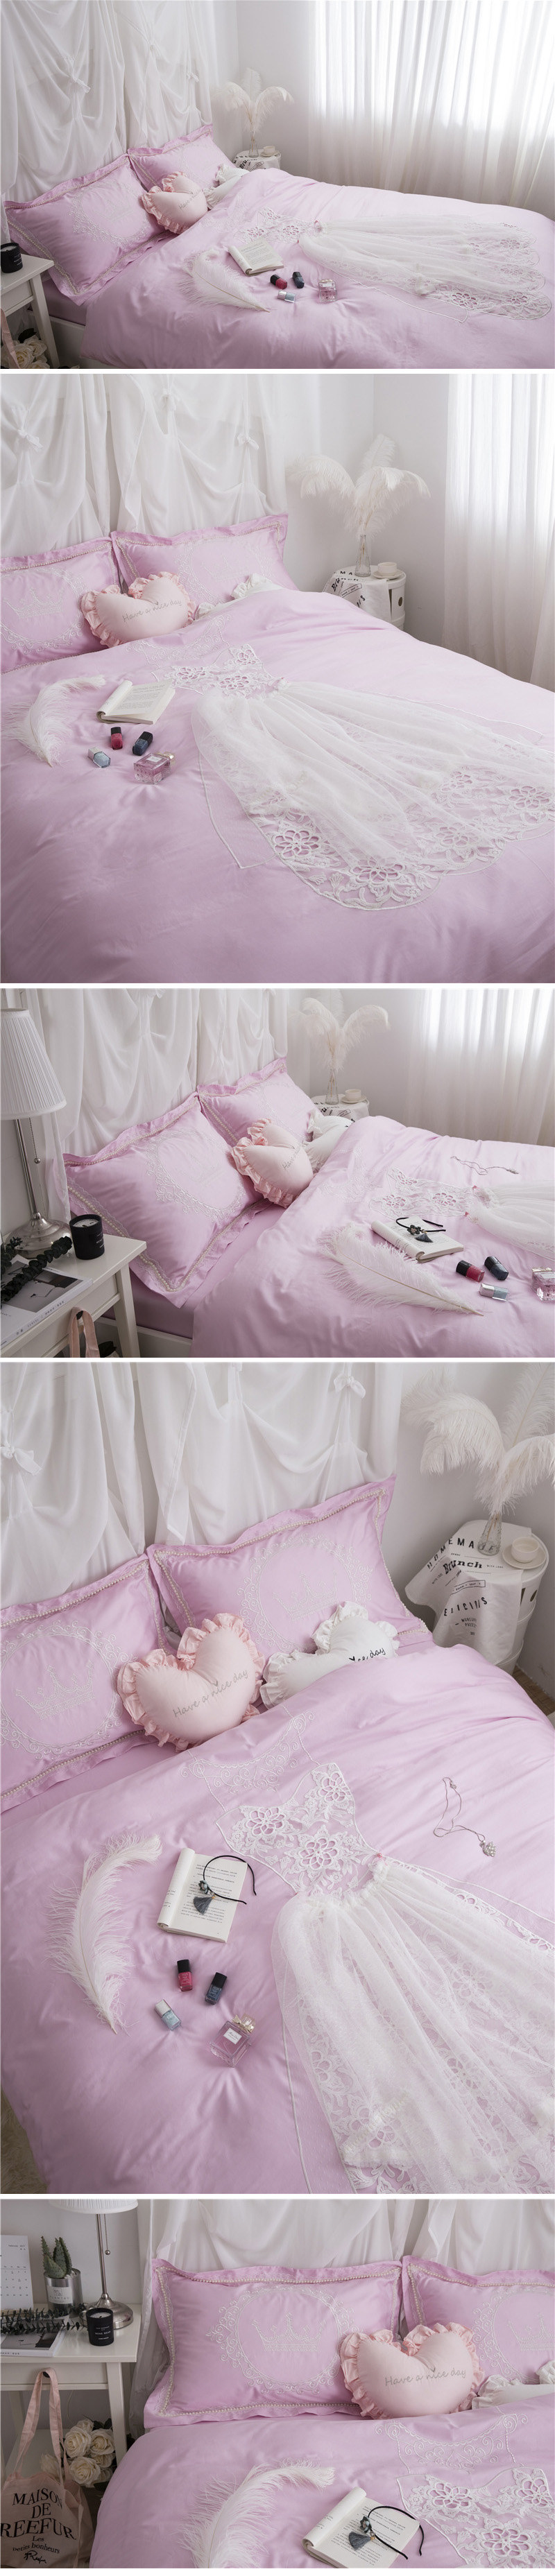 Wedding bedding sets king size 60s satin long staple cotton bed sheets romantic lace embroidery duvet cover bed linen 2